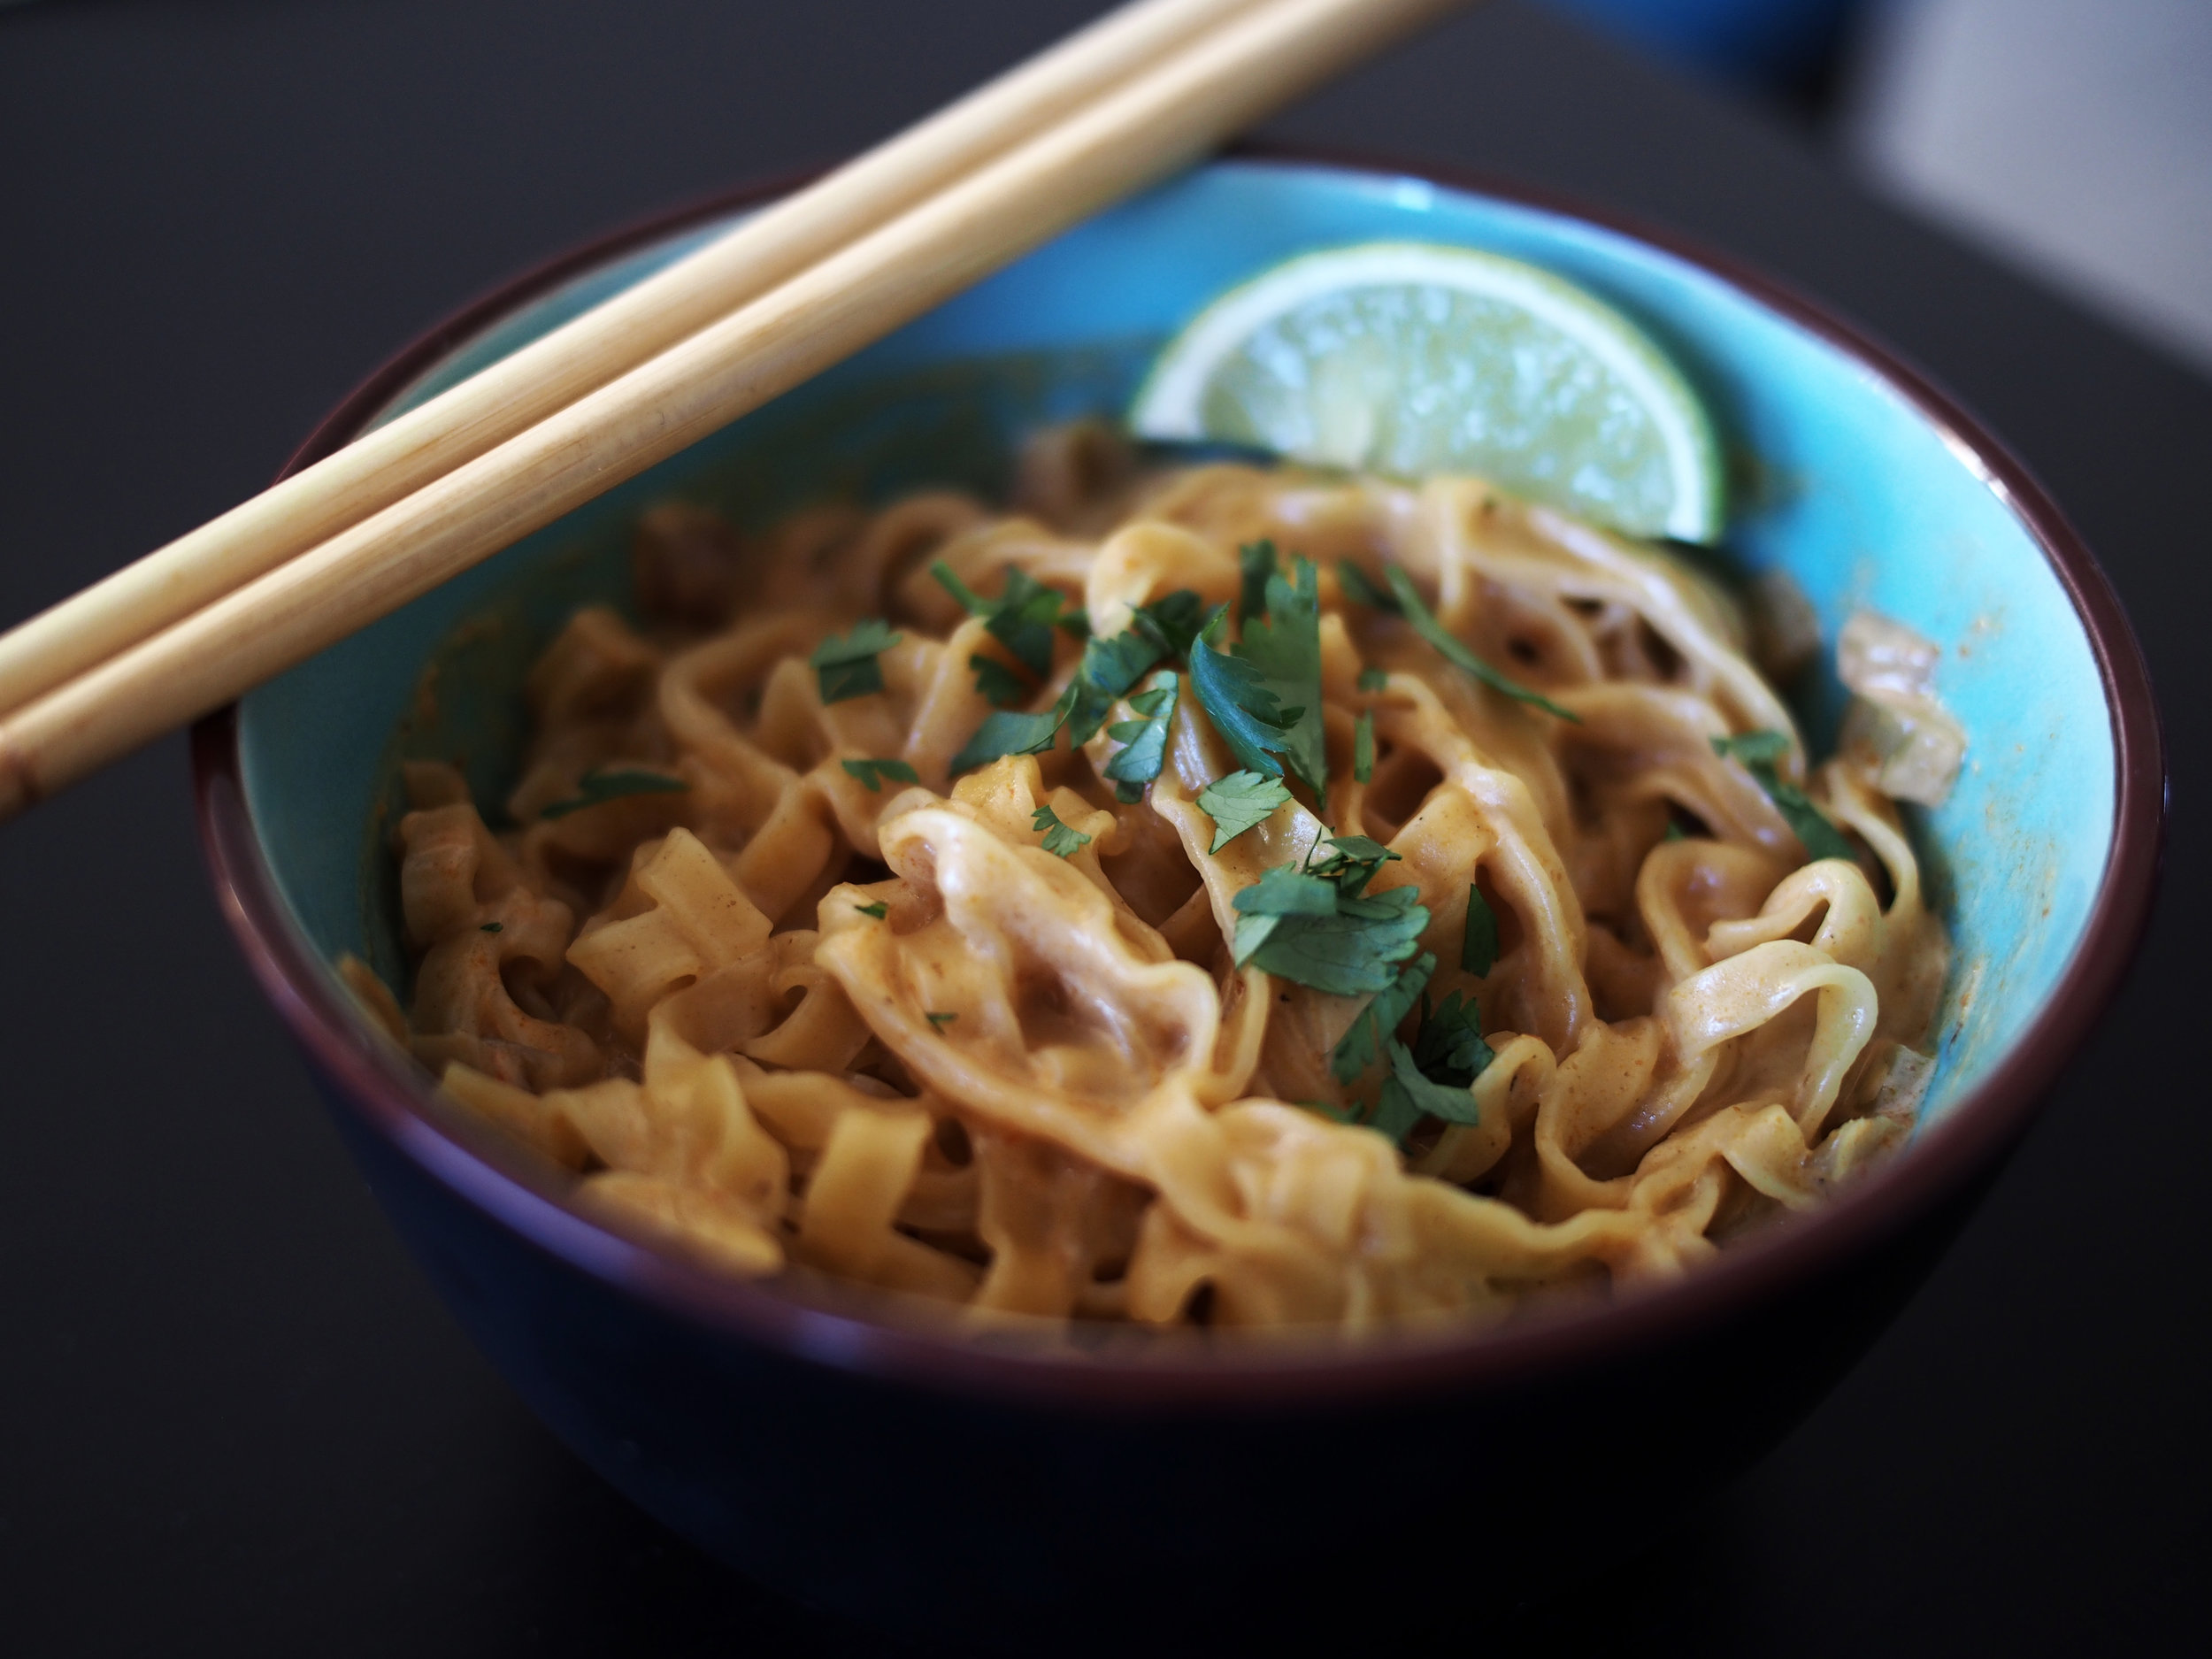 Egg noodles in red curry sauce with lime